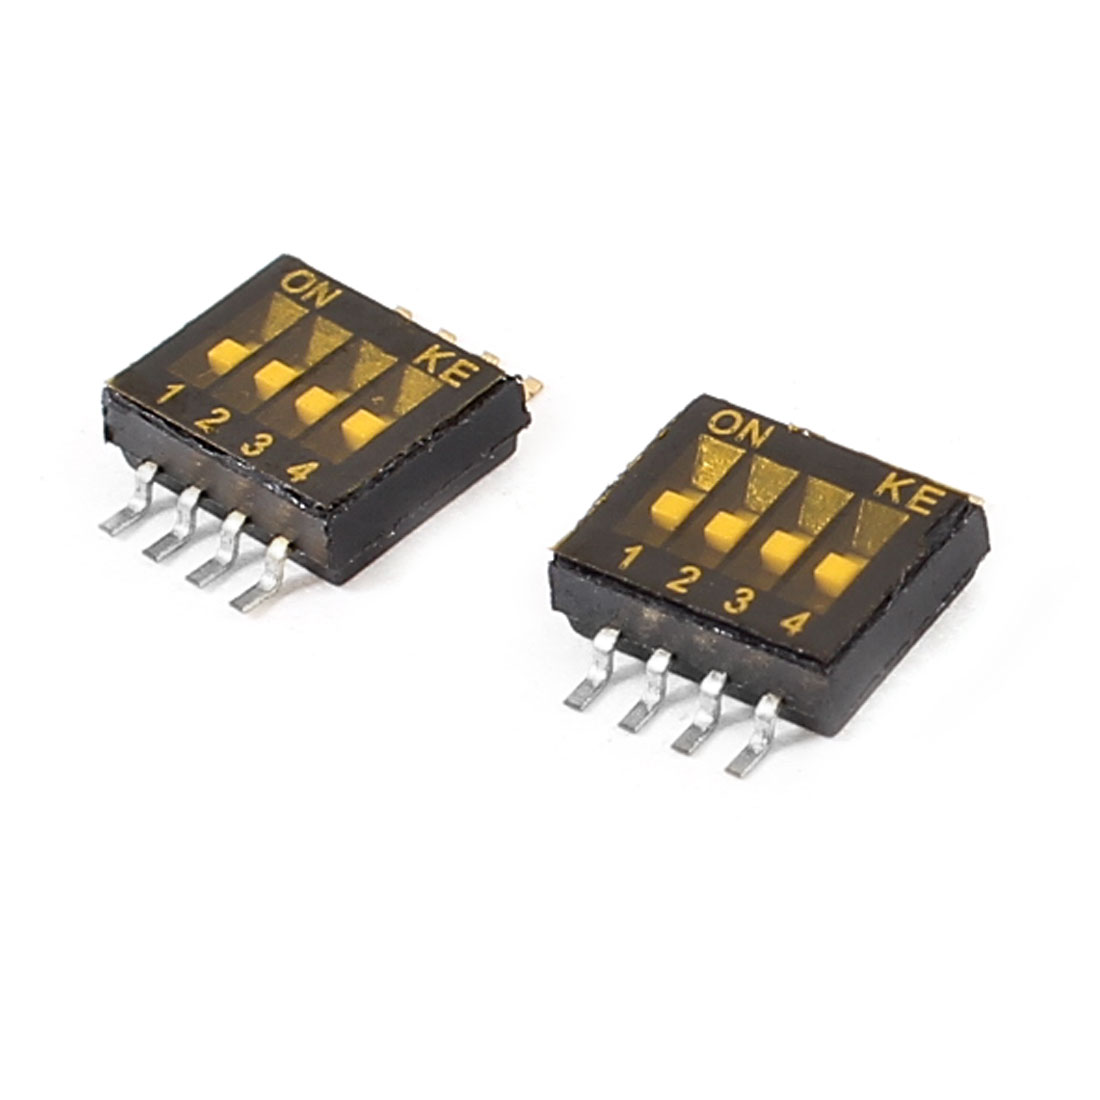 1.27mm Pitch 8Pin 4 Position Surface Mount SMT SMD DIP Switch 2 Pcs